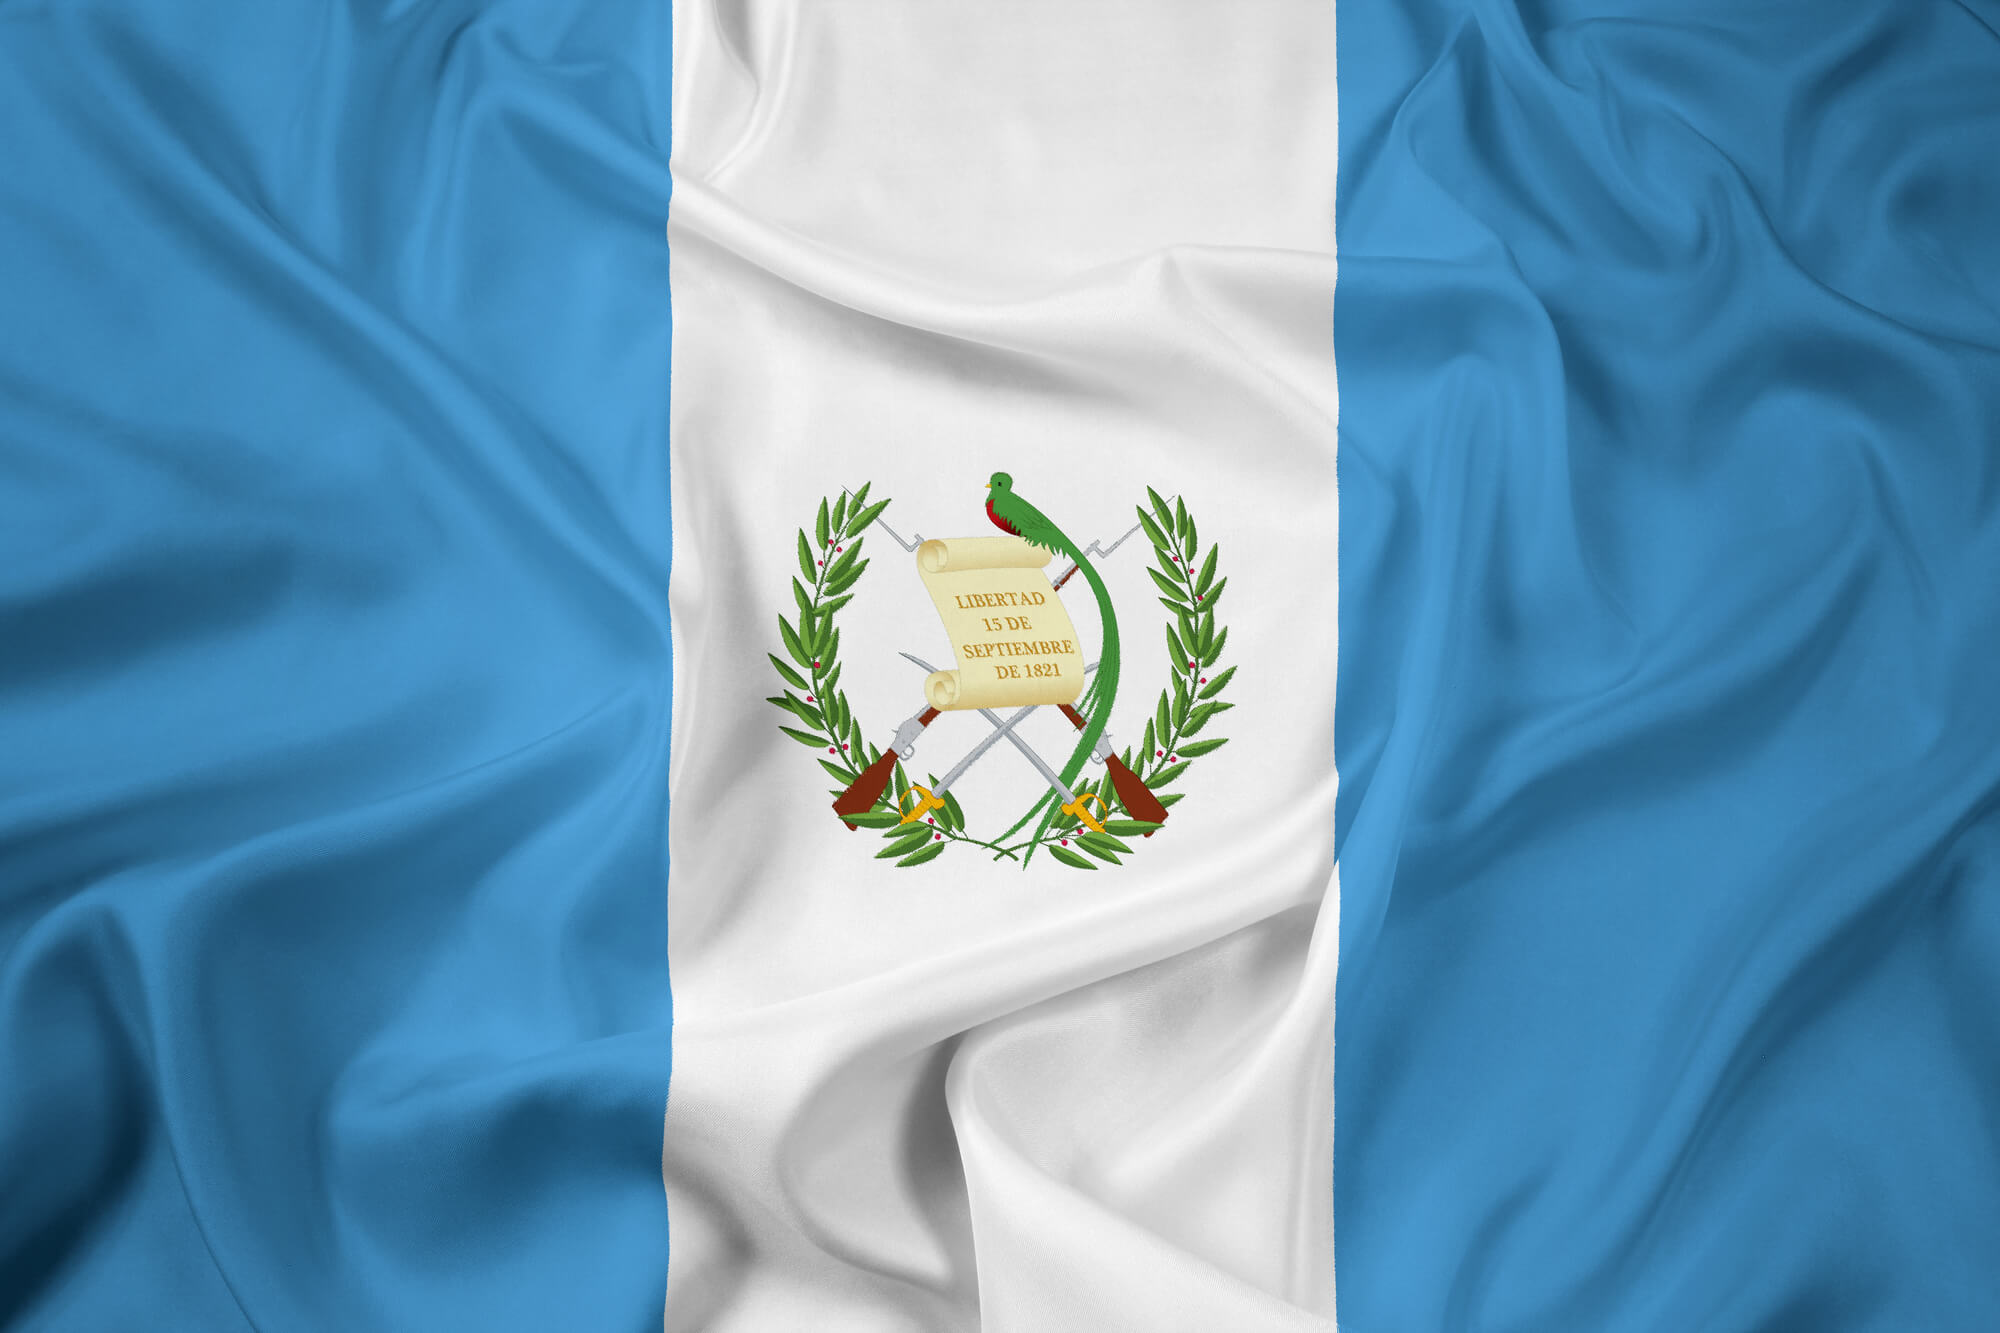 Guatemala's Anti-Corruption Experiment: An Exception to the Rule or an Example to Follow?